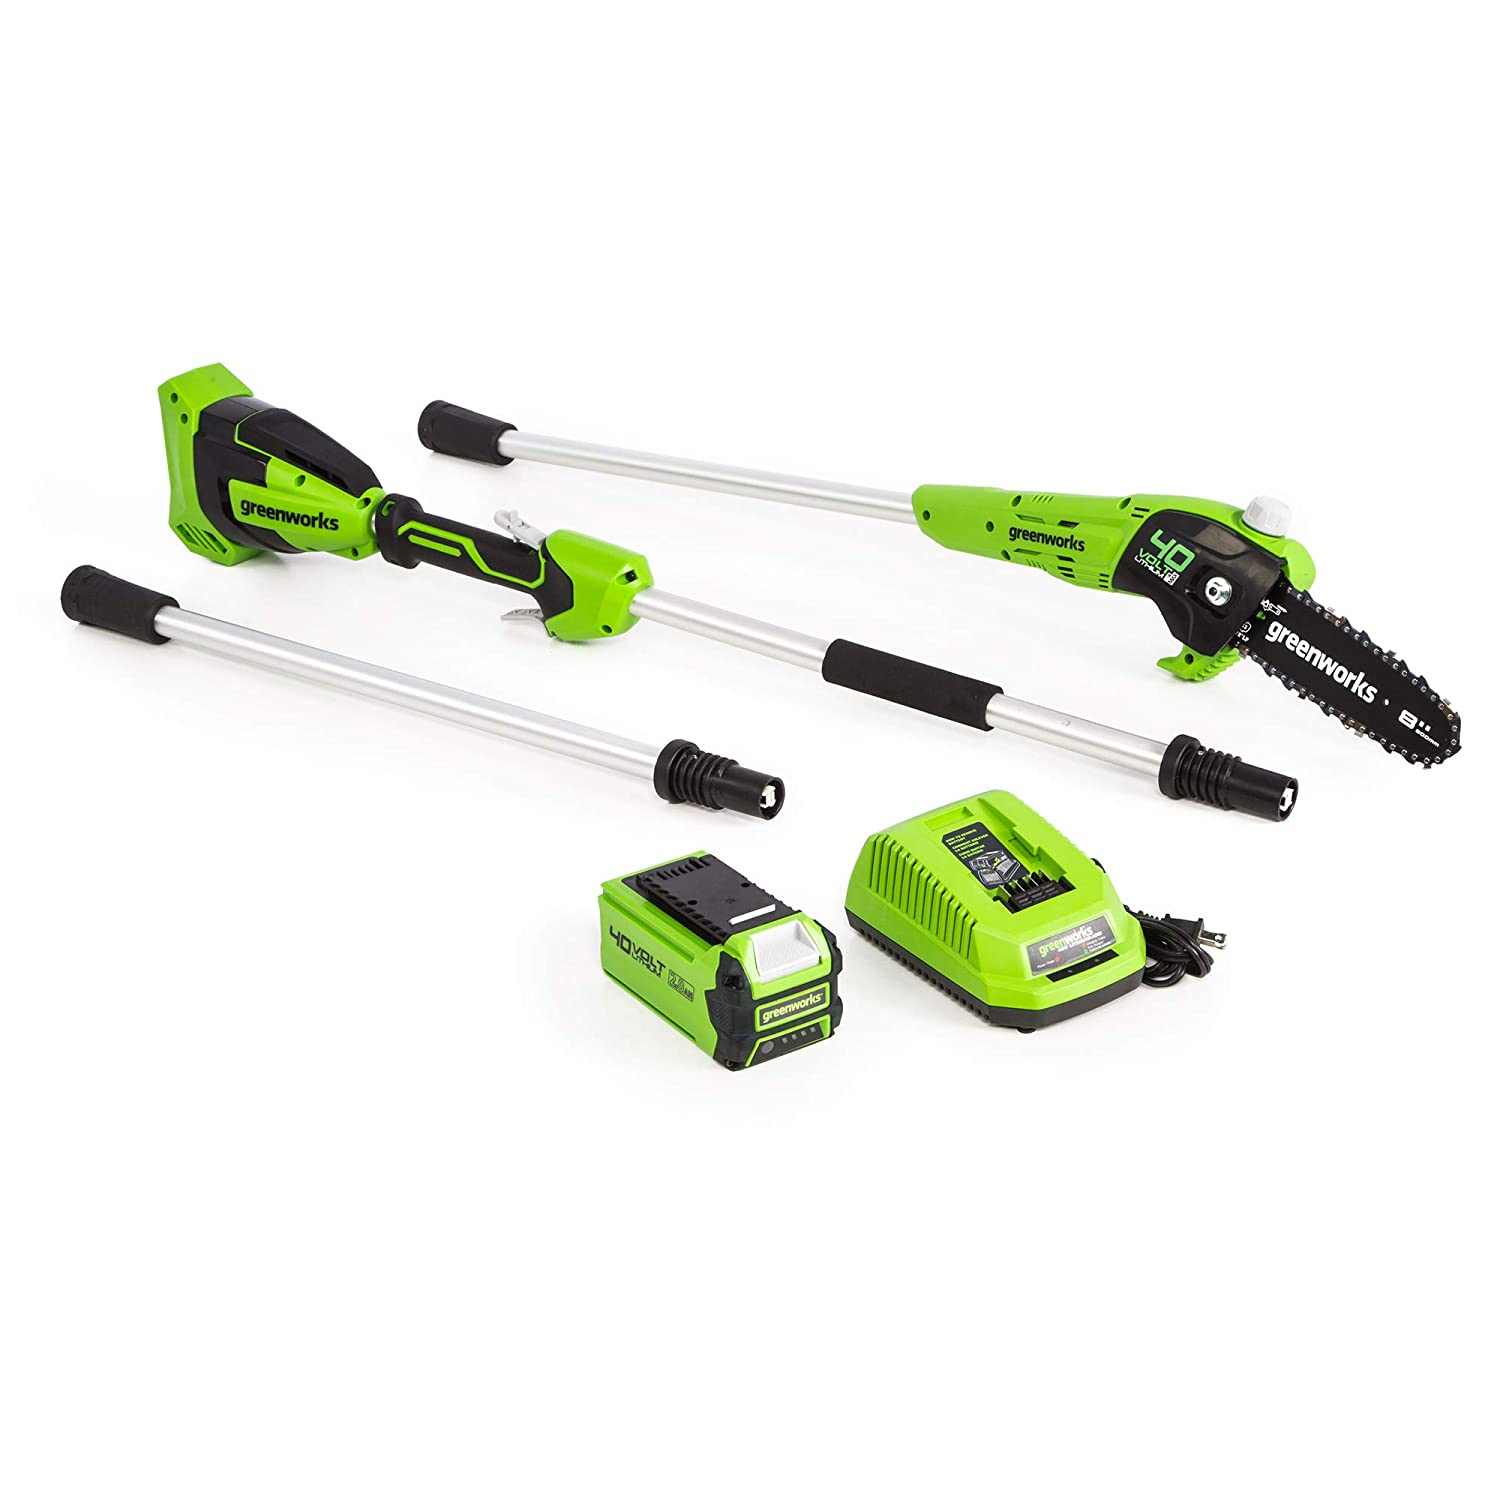 Greenworks 8-Inch 40V Cordless Pole Saw, 2Ah Battery, PS40L210